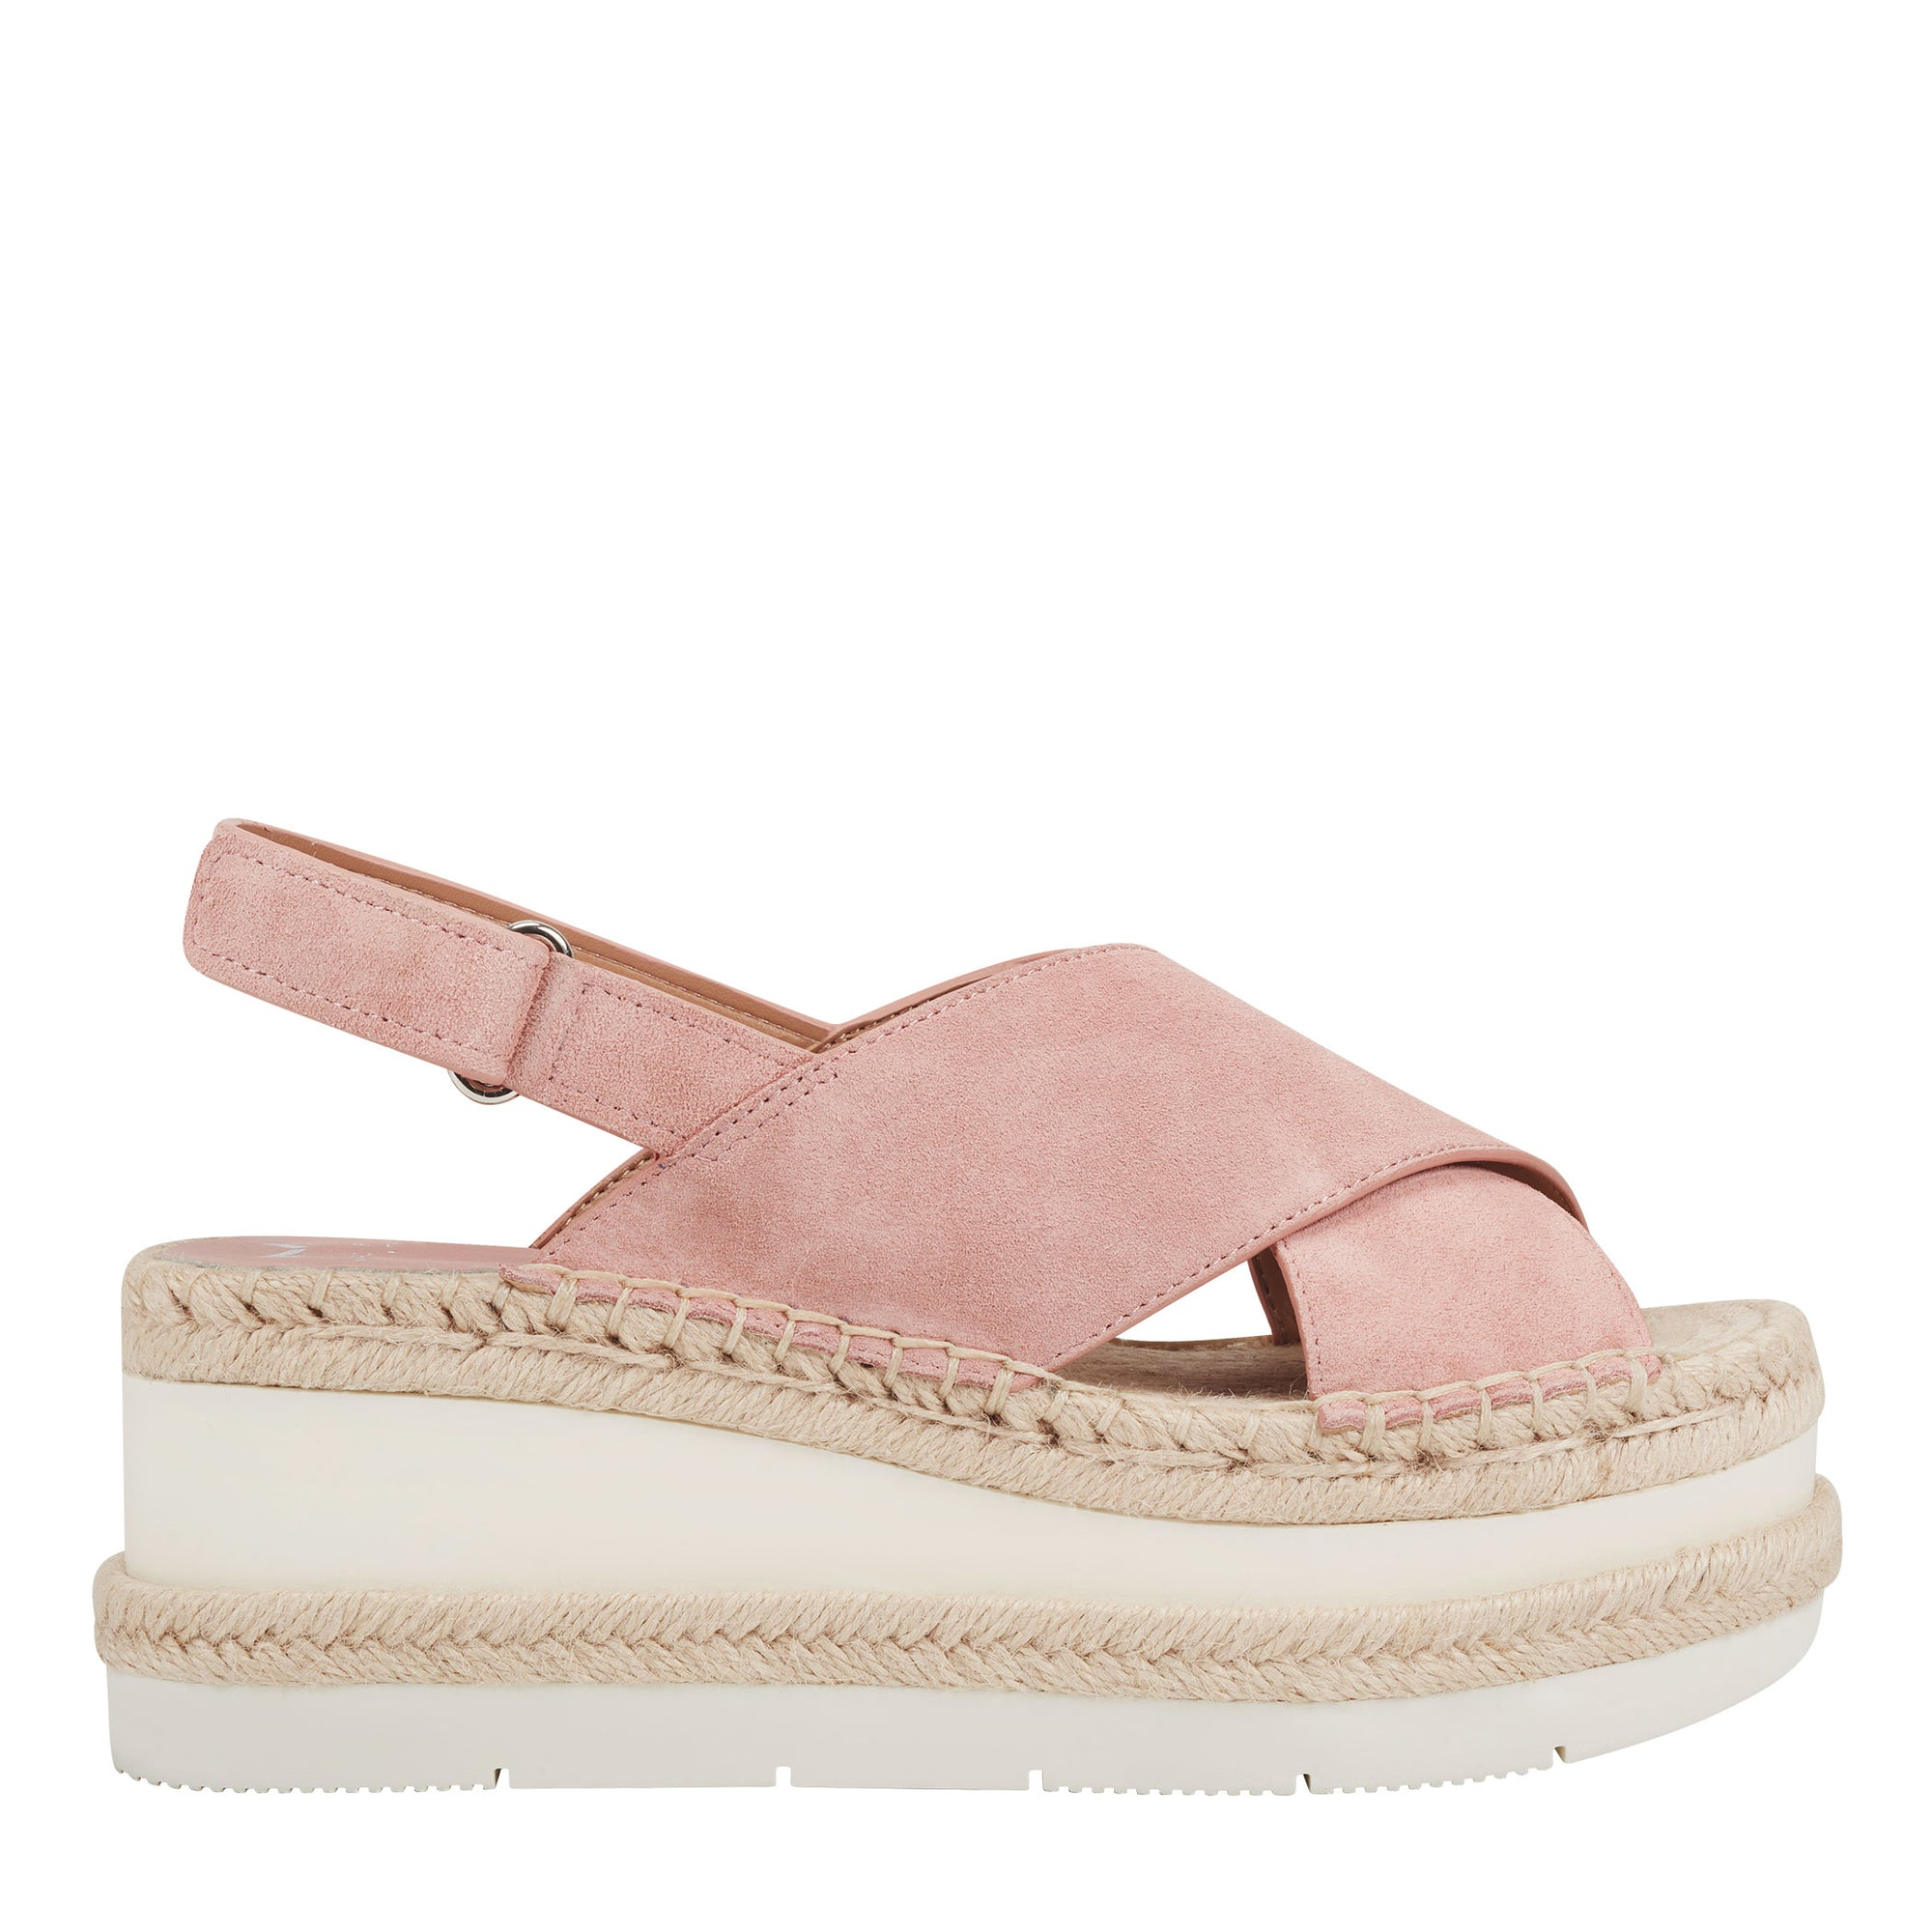 gandy-espadrille-wedge-sandal-in-pink-suede